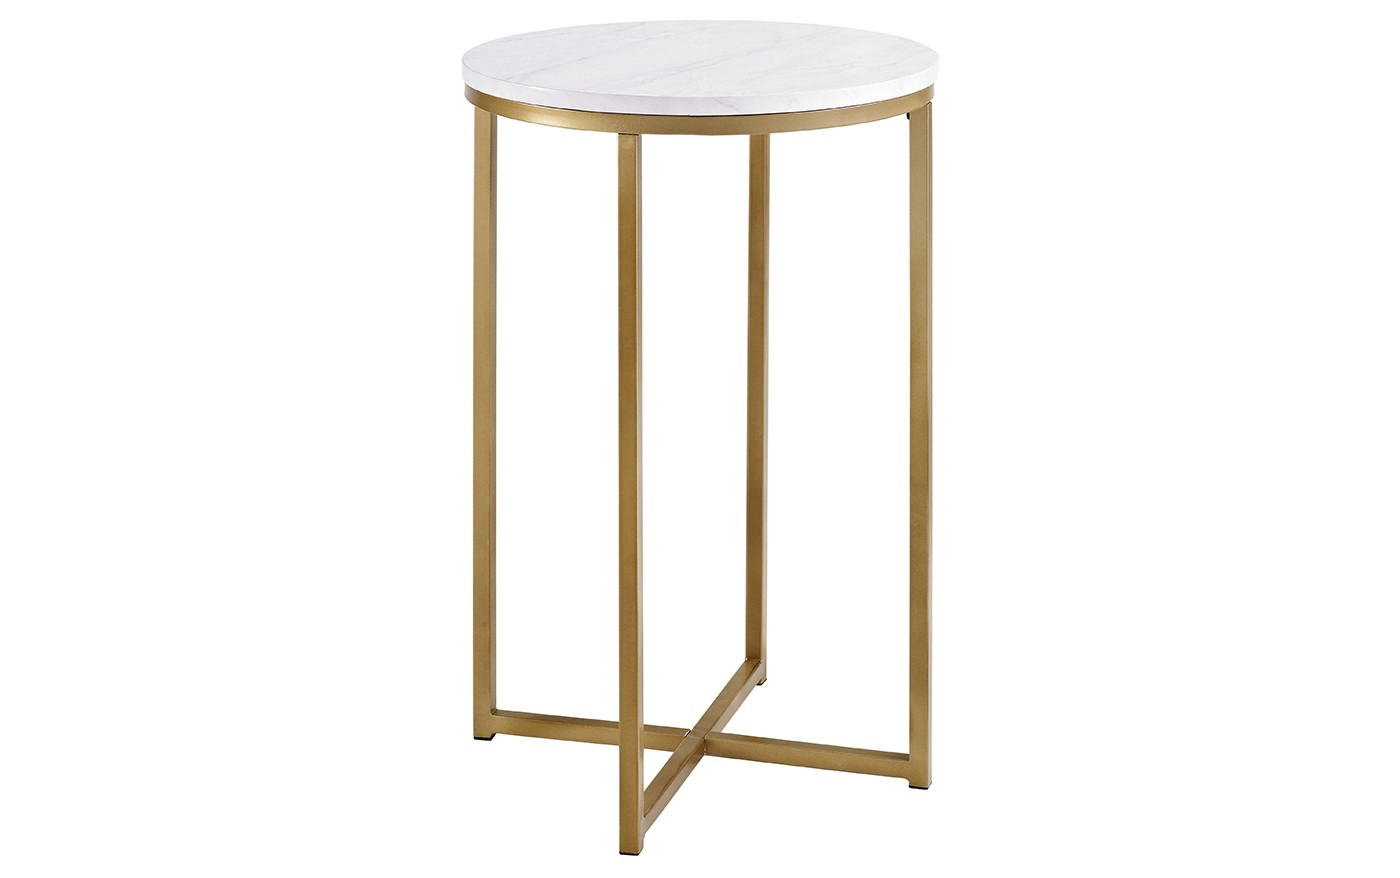 end tables target home that upgrade your living manila cylinder drum accent table brass room for less than wooden patio with umbrella hole entrance furniture white and black side